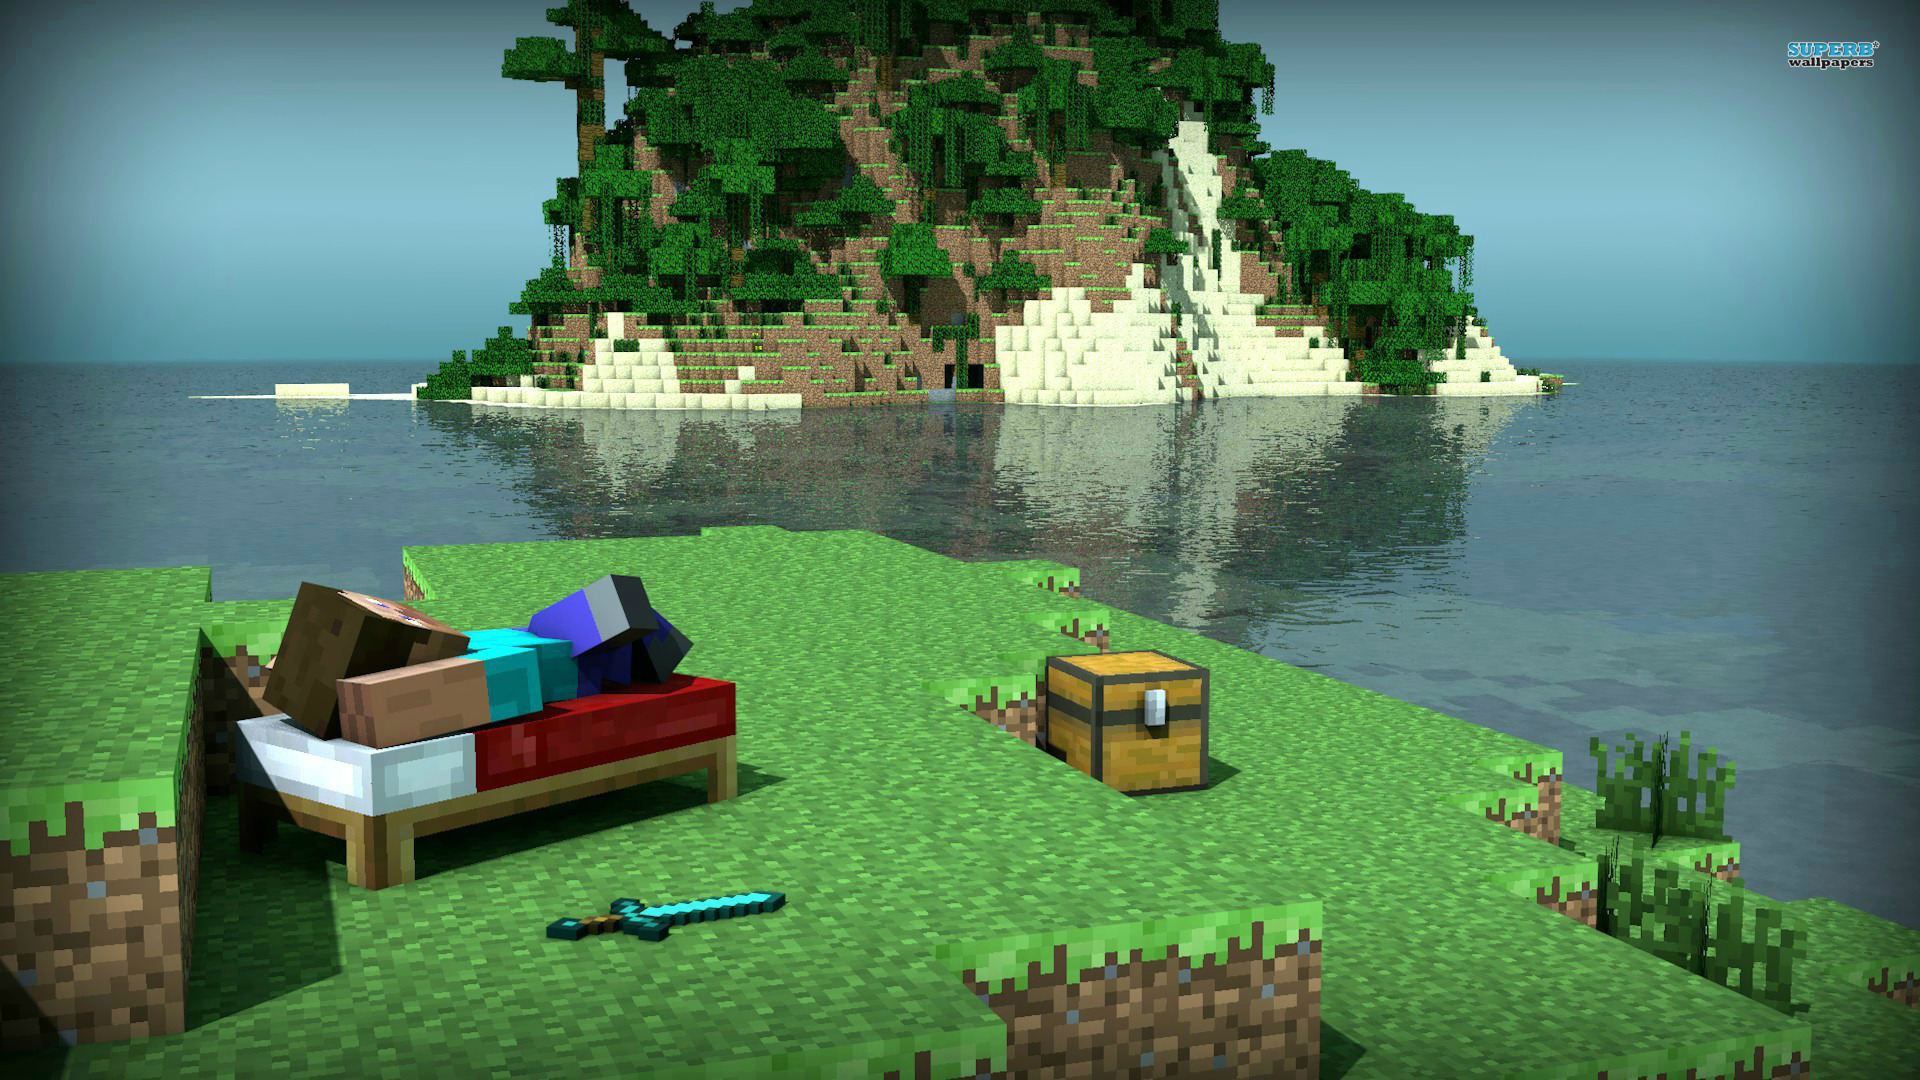 Wallpaper's Collection: «Minecraft Wallpapers»